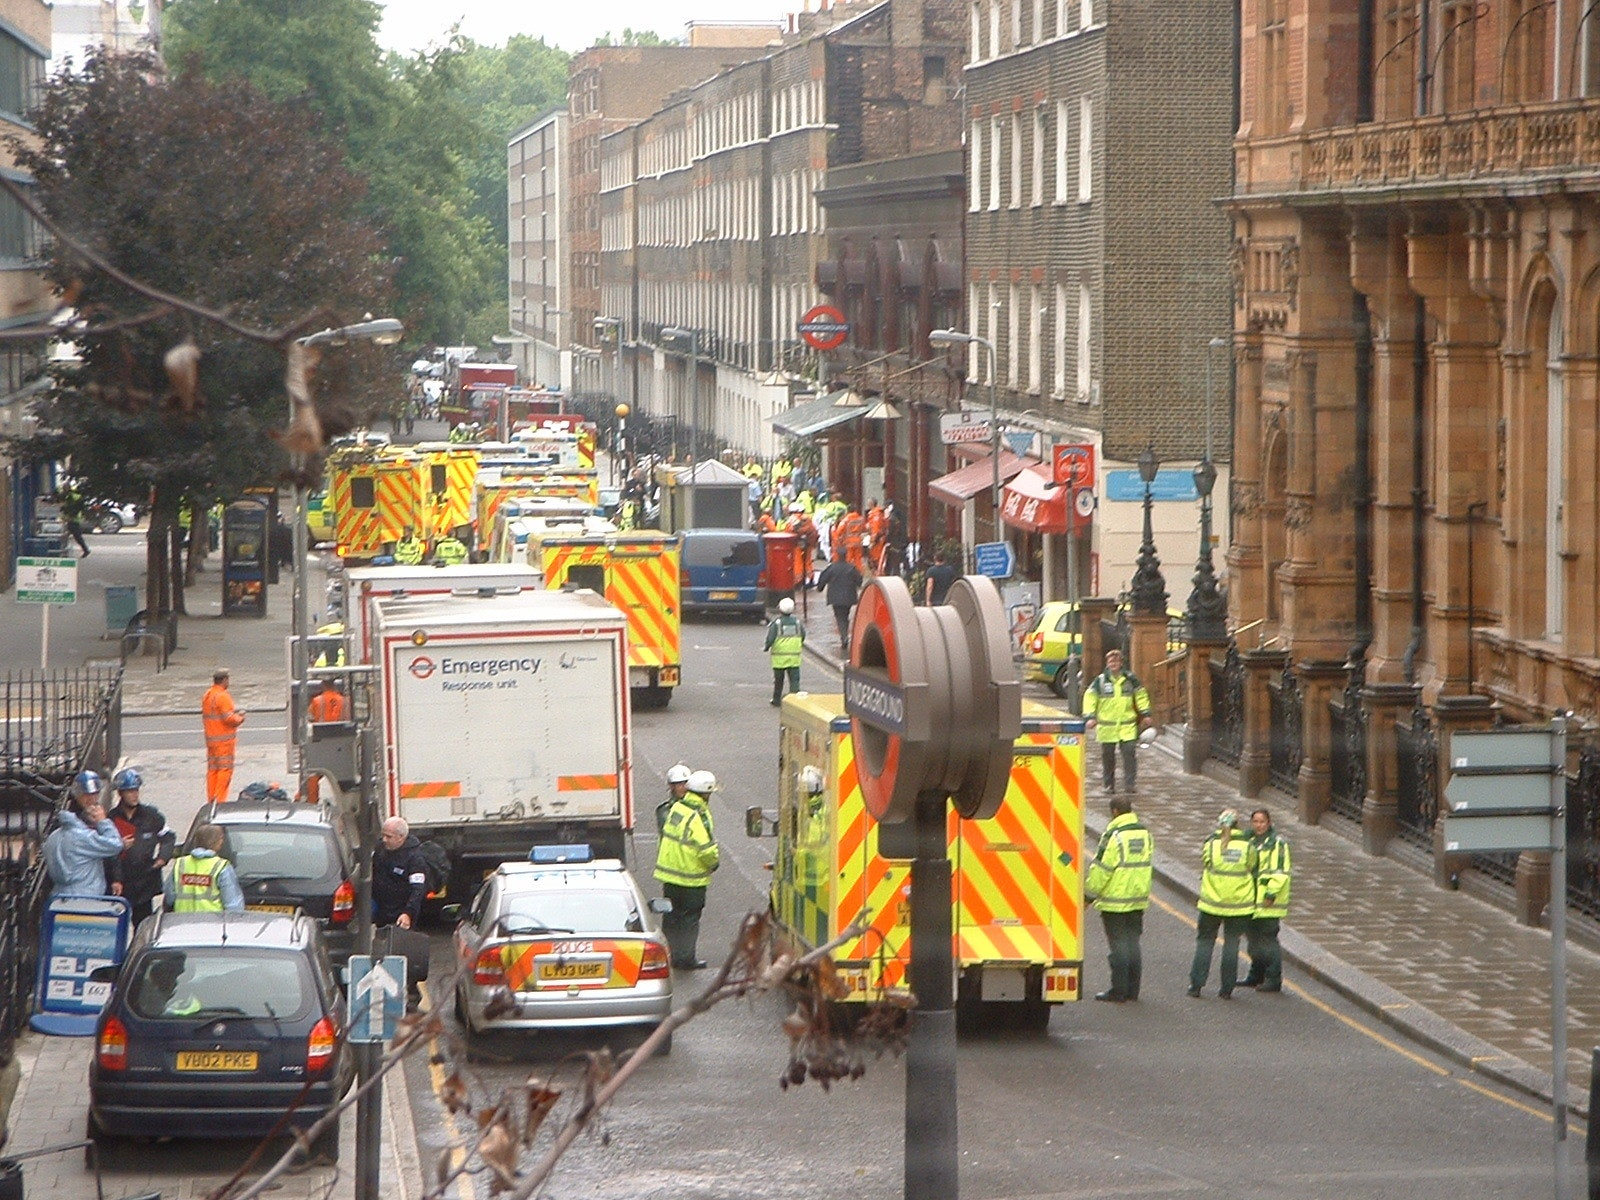 Emergency services outside Russell Square tube station.